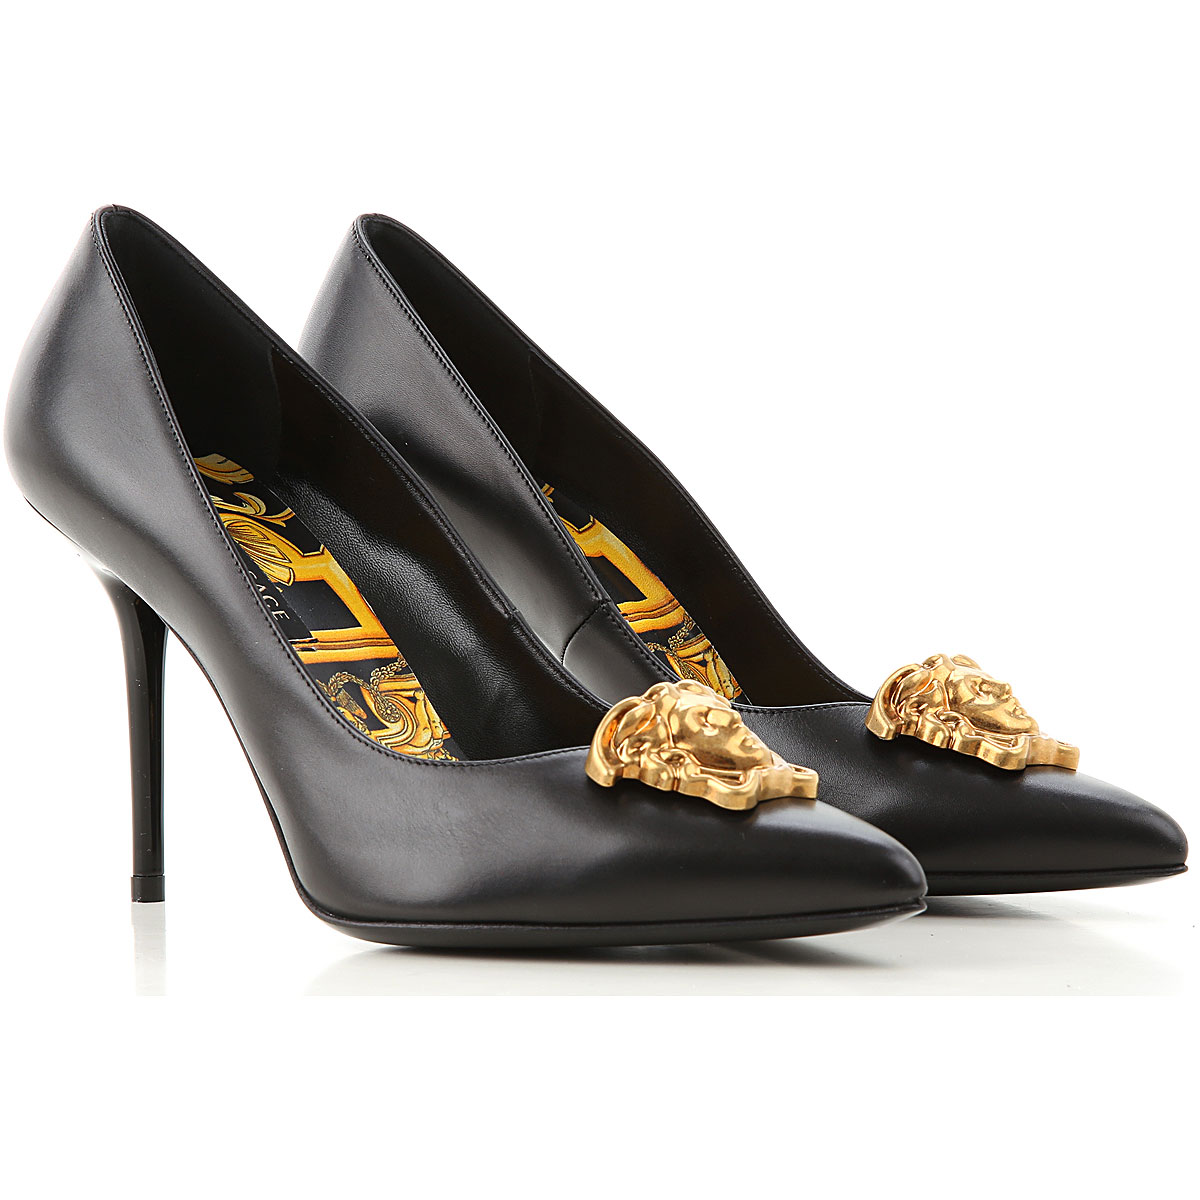 Gianni Versace Pumps & High Heels for Women On Sale, Black, Leather, 2019, 5.5 8